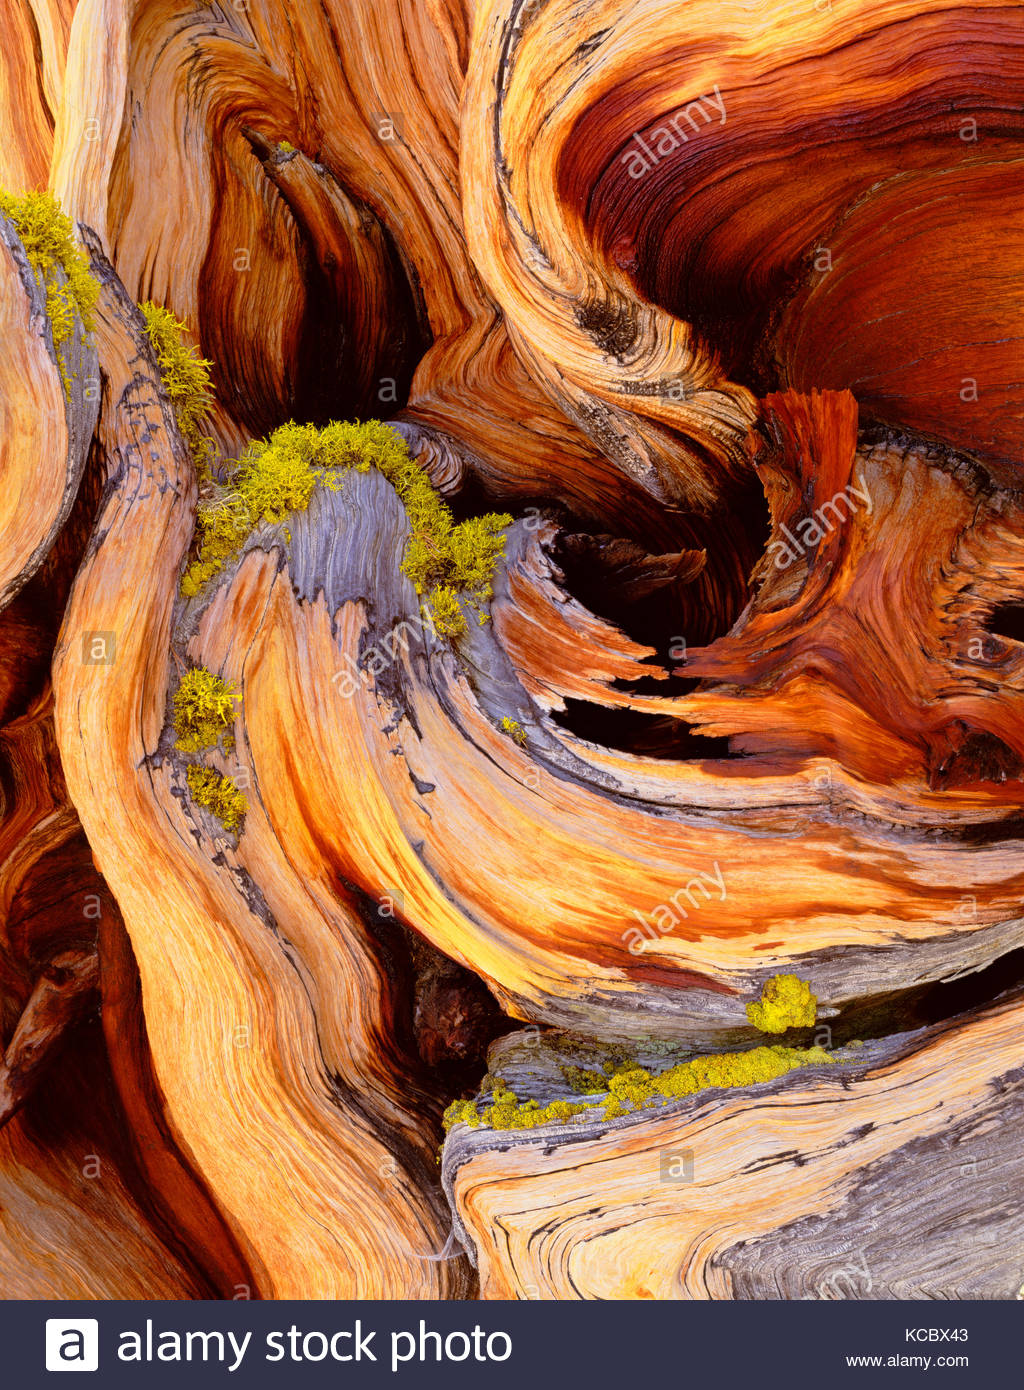 Detail of Ancient Bristlecone Pine, Great Basin National Park, Nevada Stock Photo